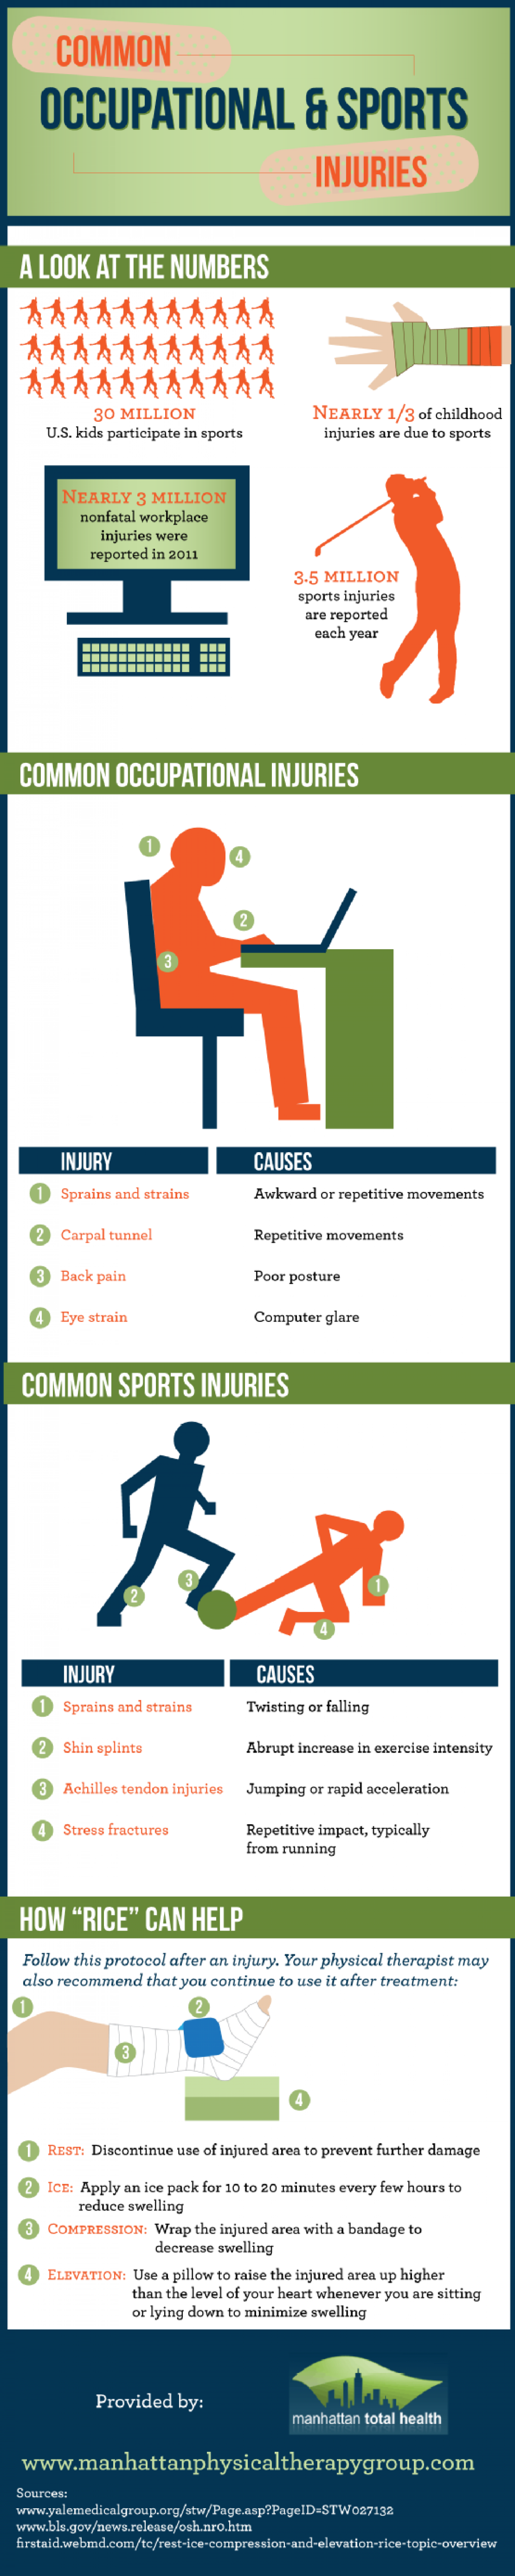 Common Occupational & Sports Injuries Infographic